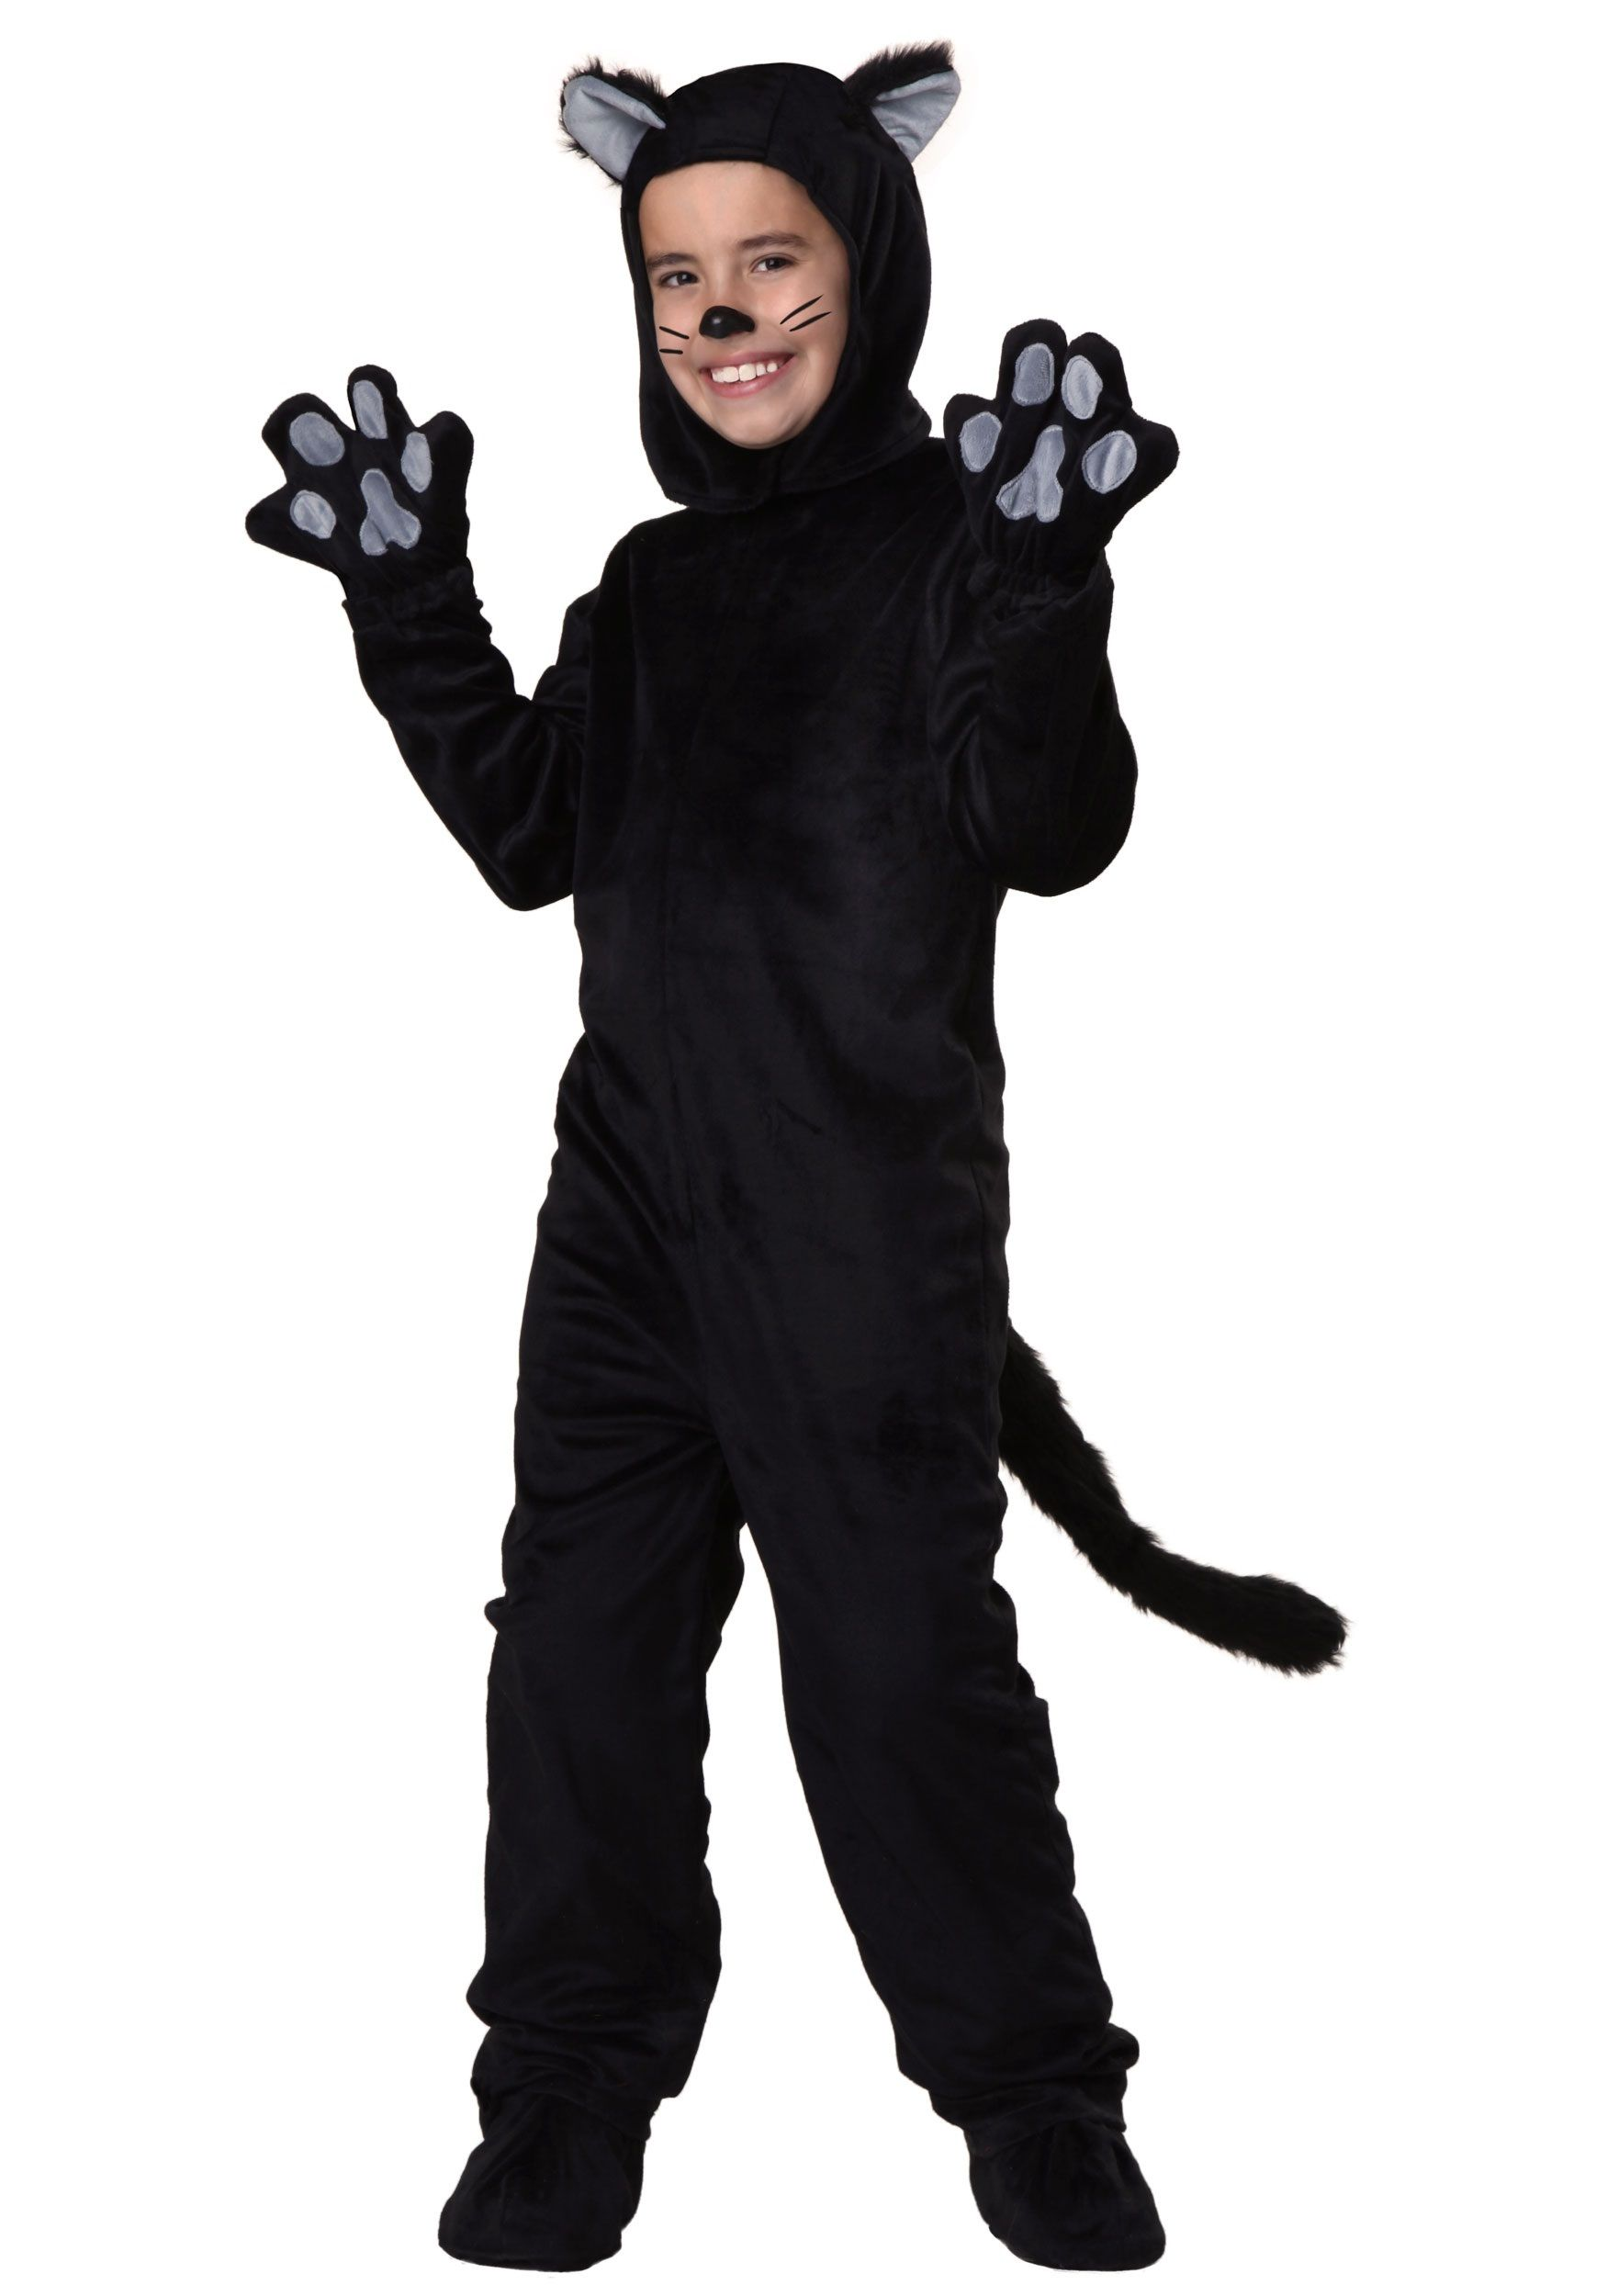 Child Black Cat Costume Cat Costume Kids Kids Black Cat Costume Animal Costumes For Kids